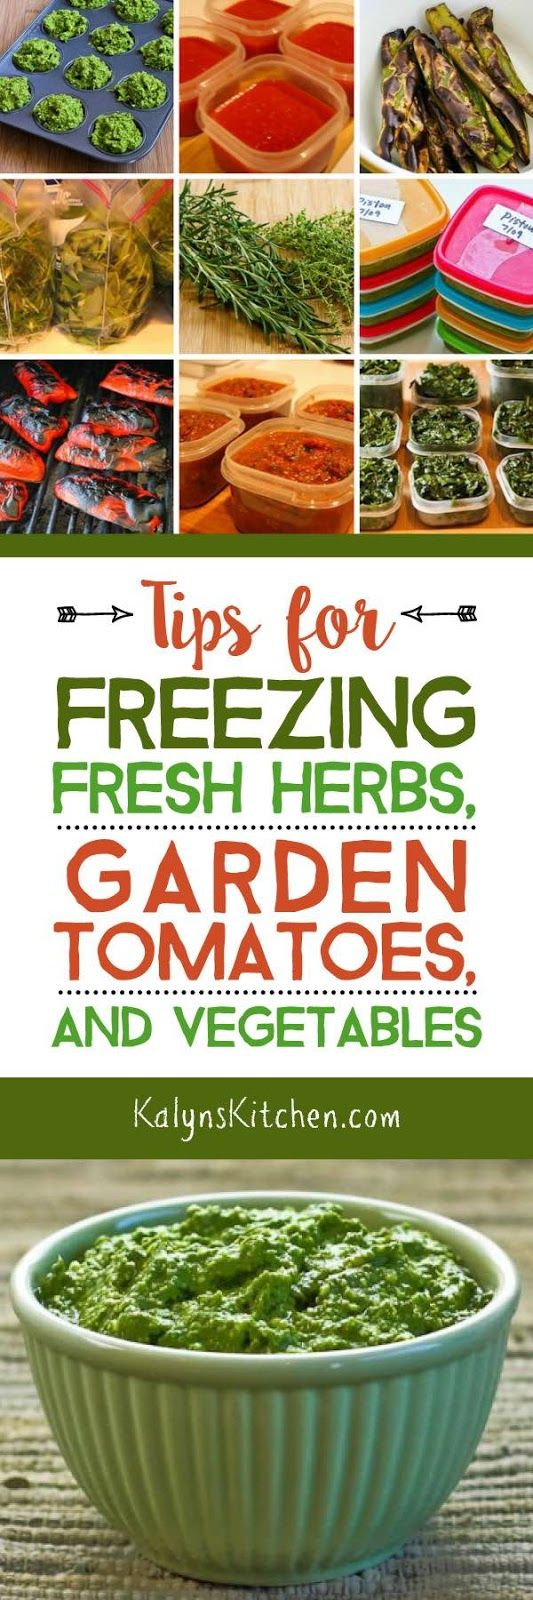 Freezing Fresh Herbs Garden Tomatoes And Fresh Herbs On